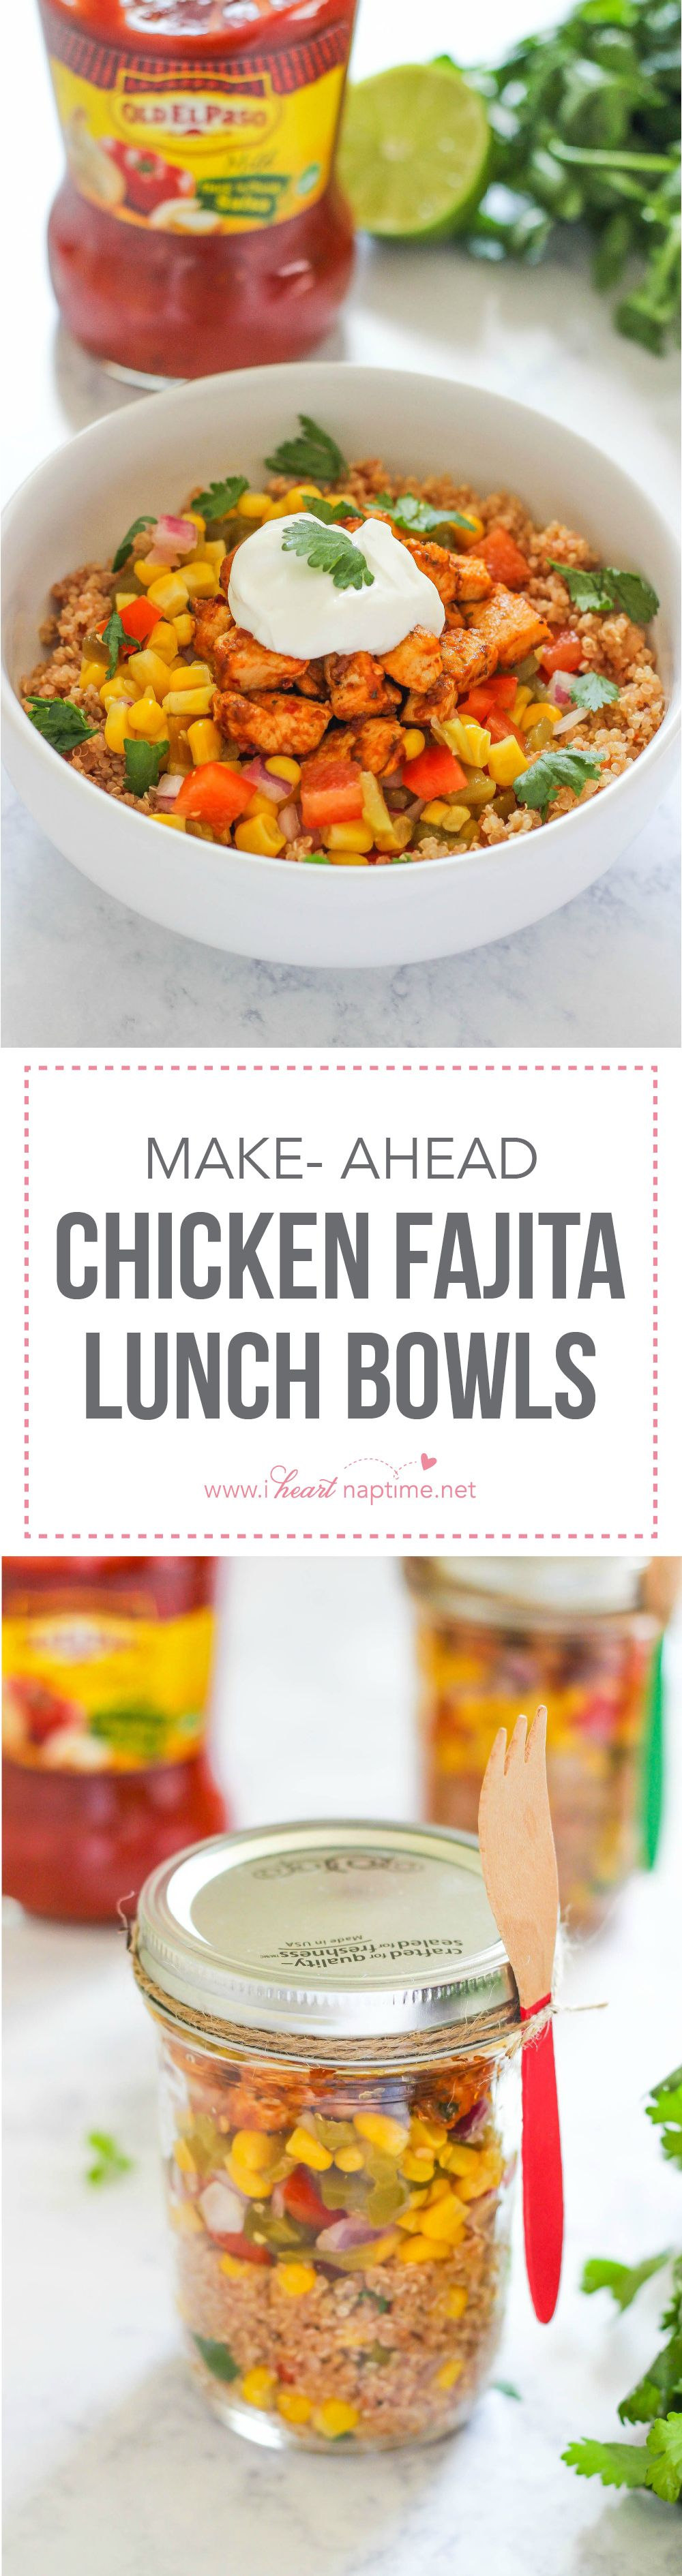 Make-Ahead Chicken Fajita Lunch Bowls   Healthy recipes, Lunches and ...